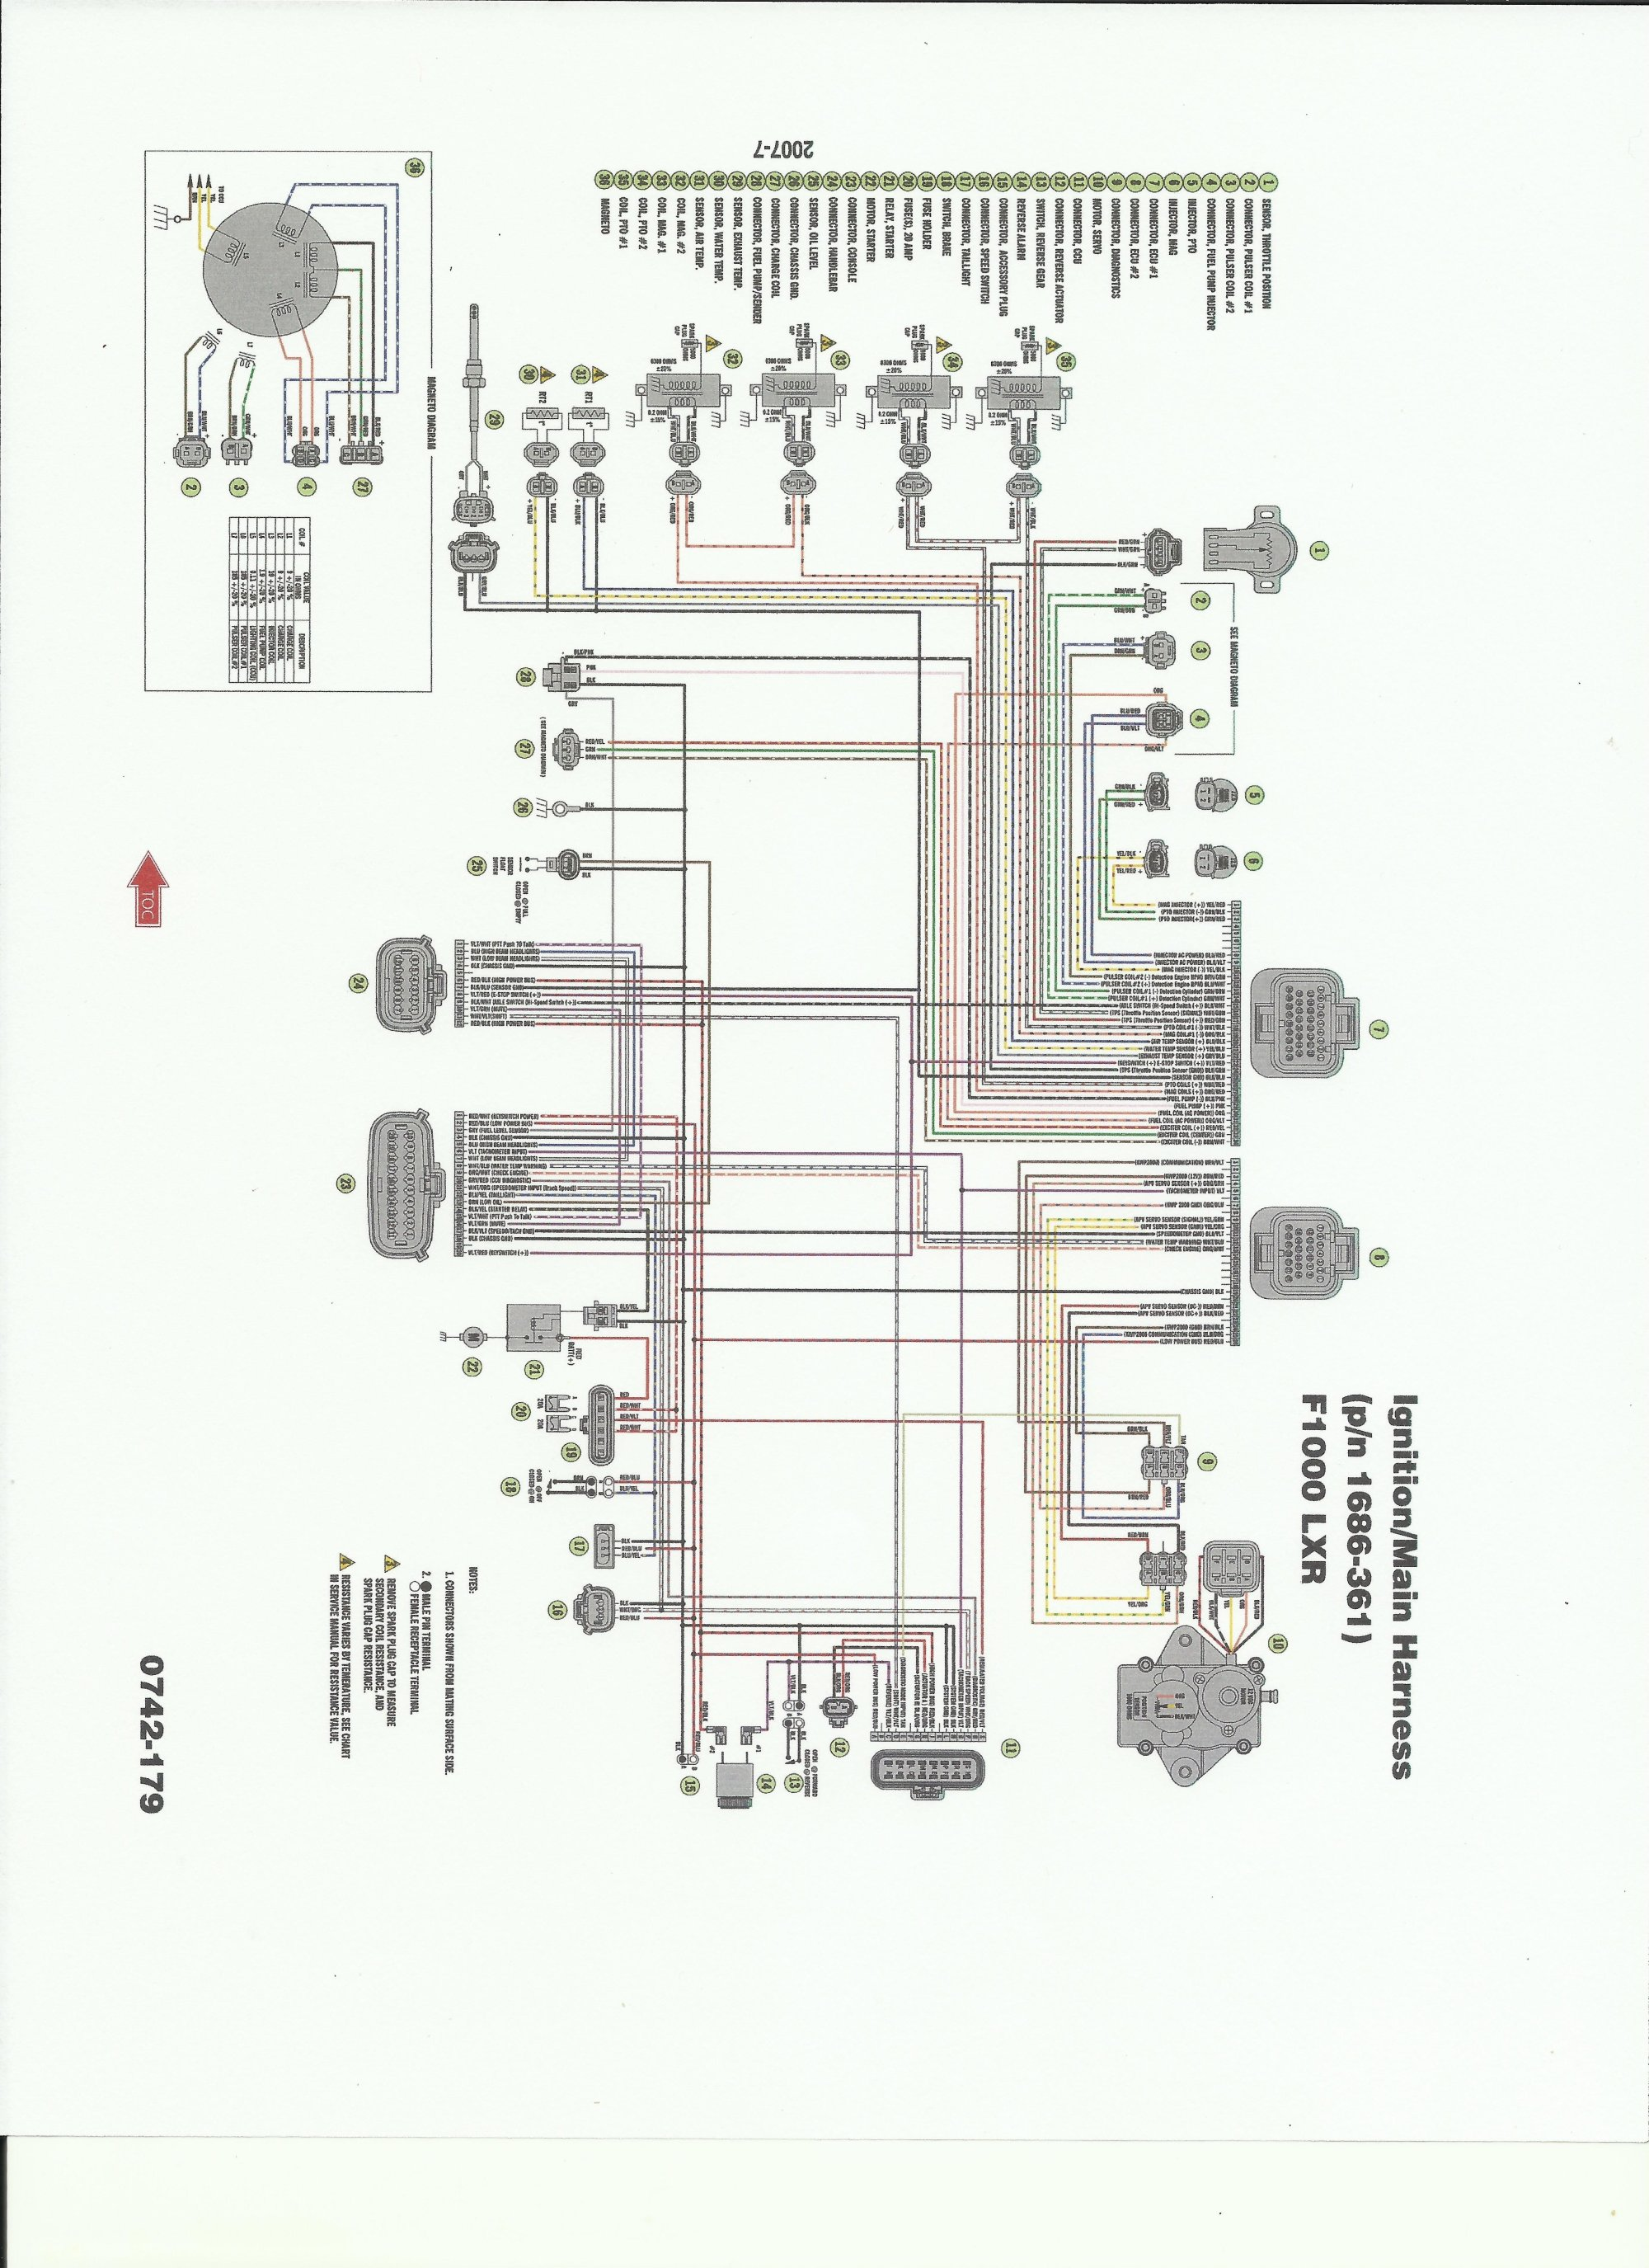 hight resolution of arctic cat f 800 wiring diagram wiring diagrams value arctic cat f 800 wiring diagram